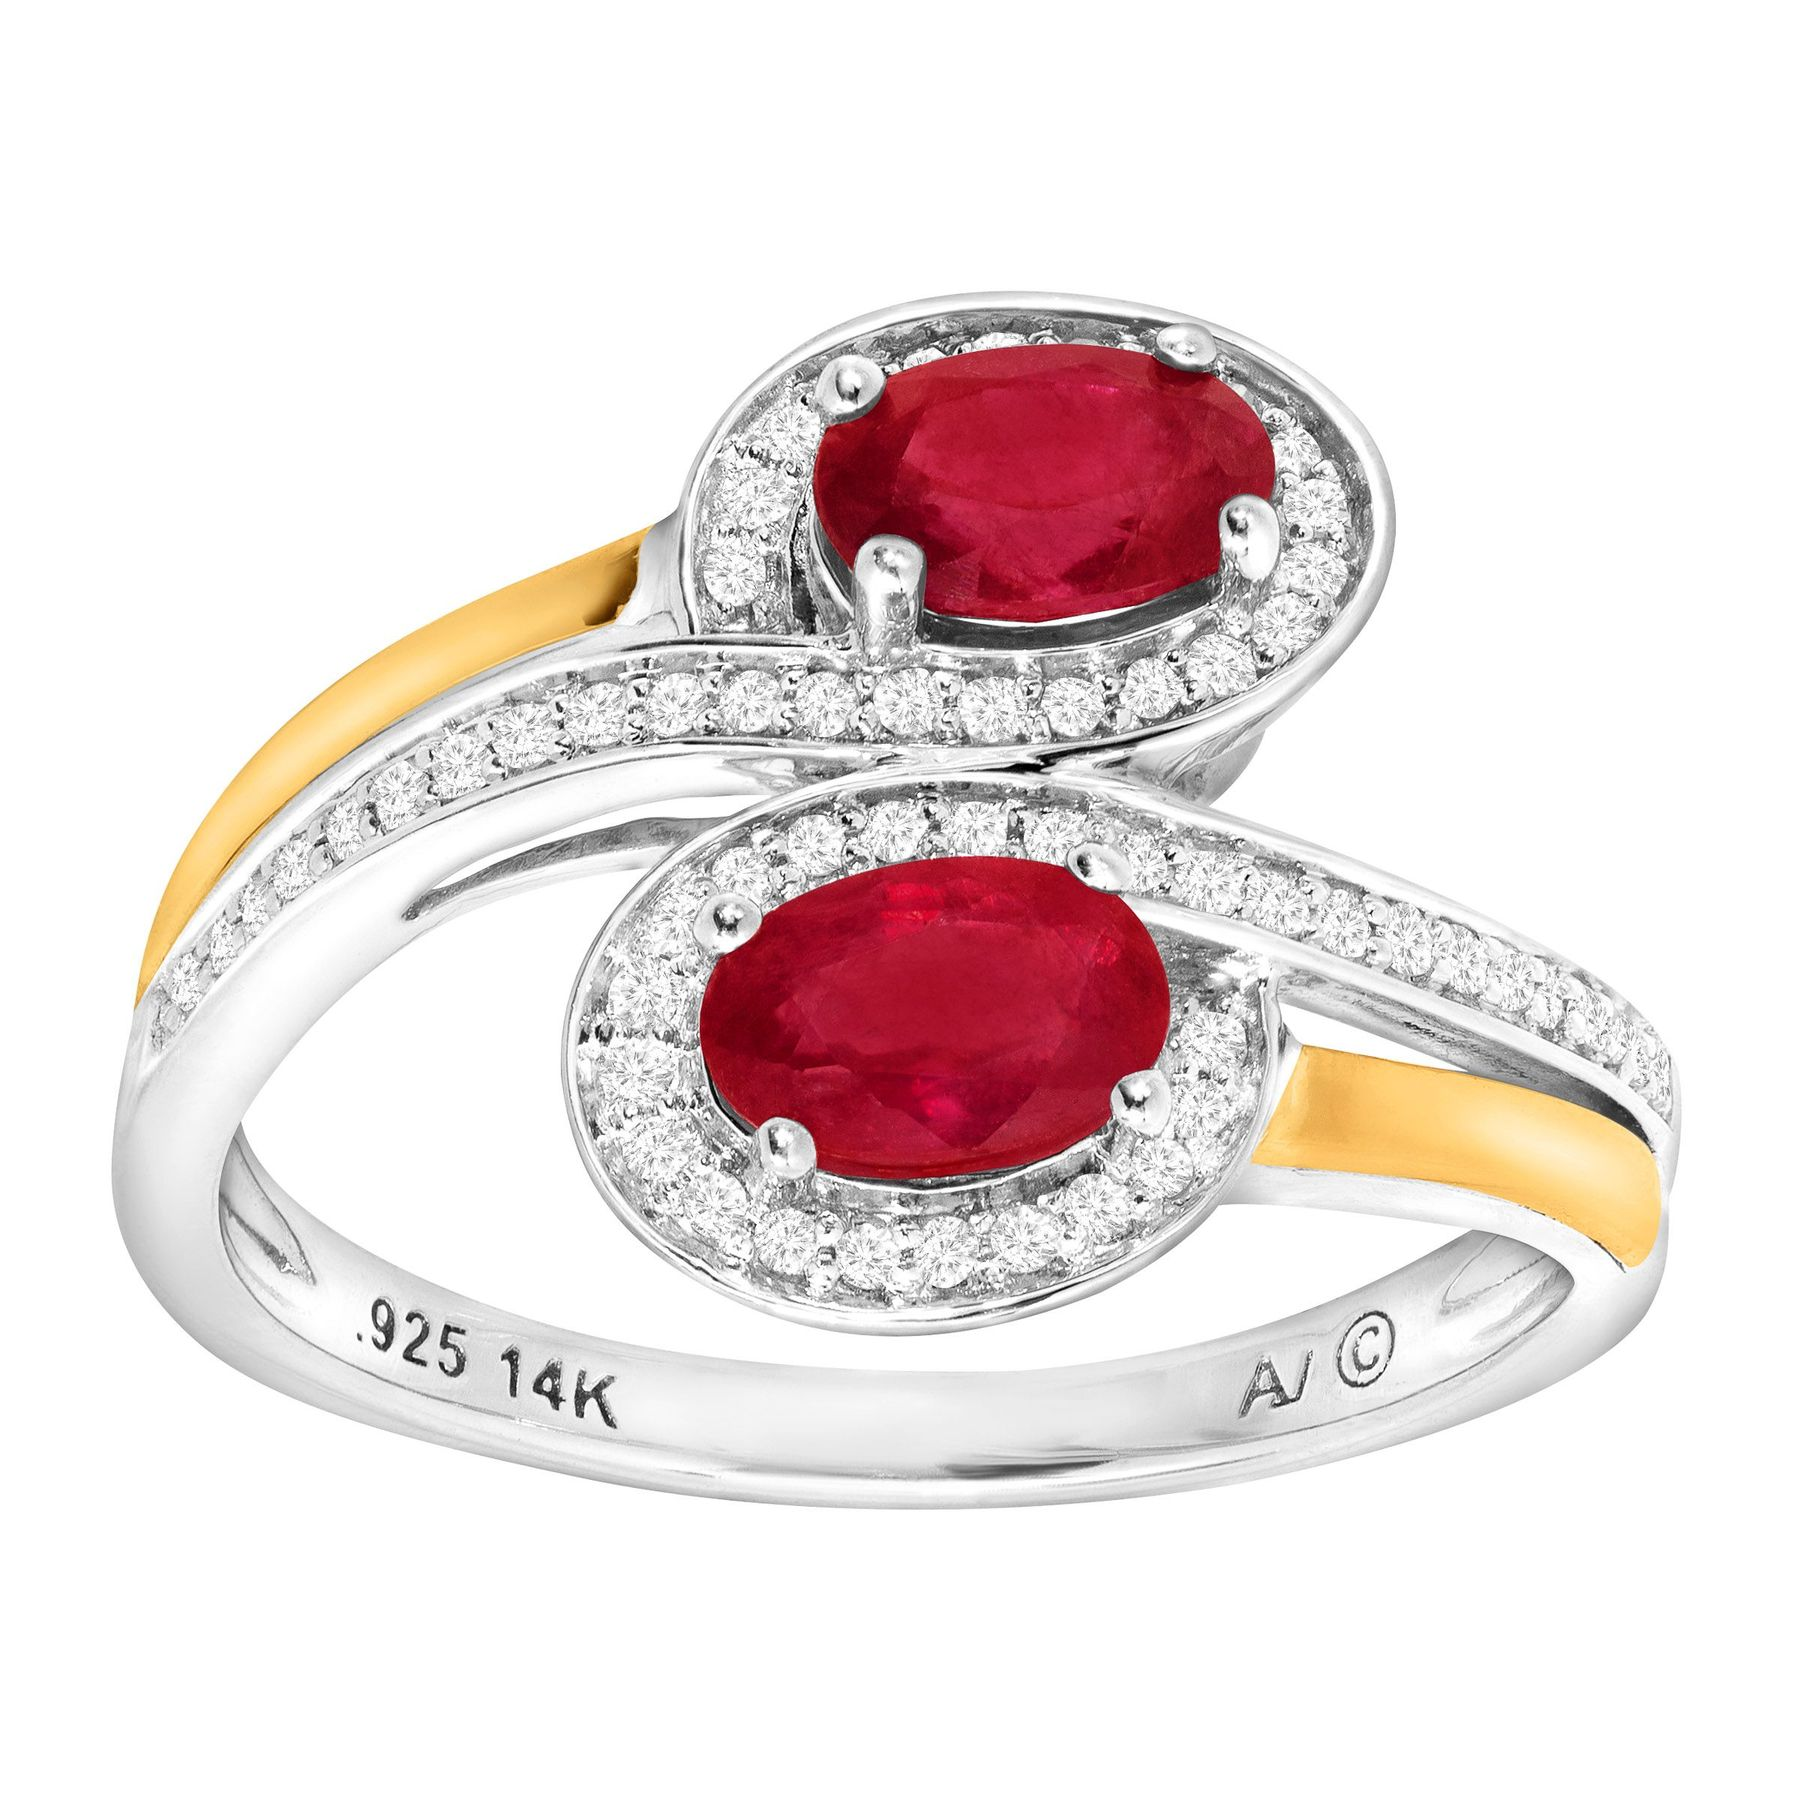 rings idea ruby engagement carat banque natural best amp ring fresh diamond wedding la of s